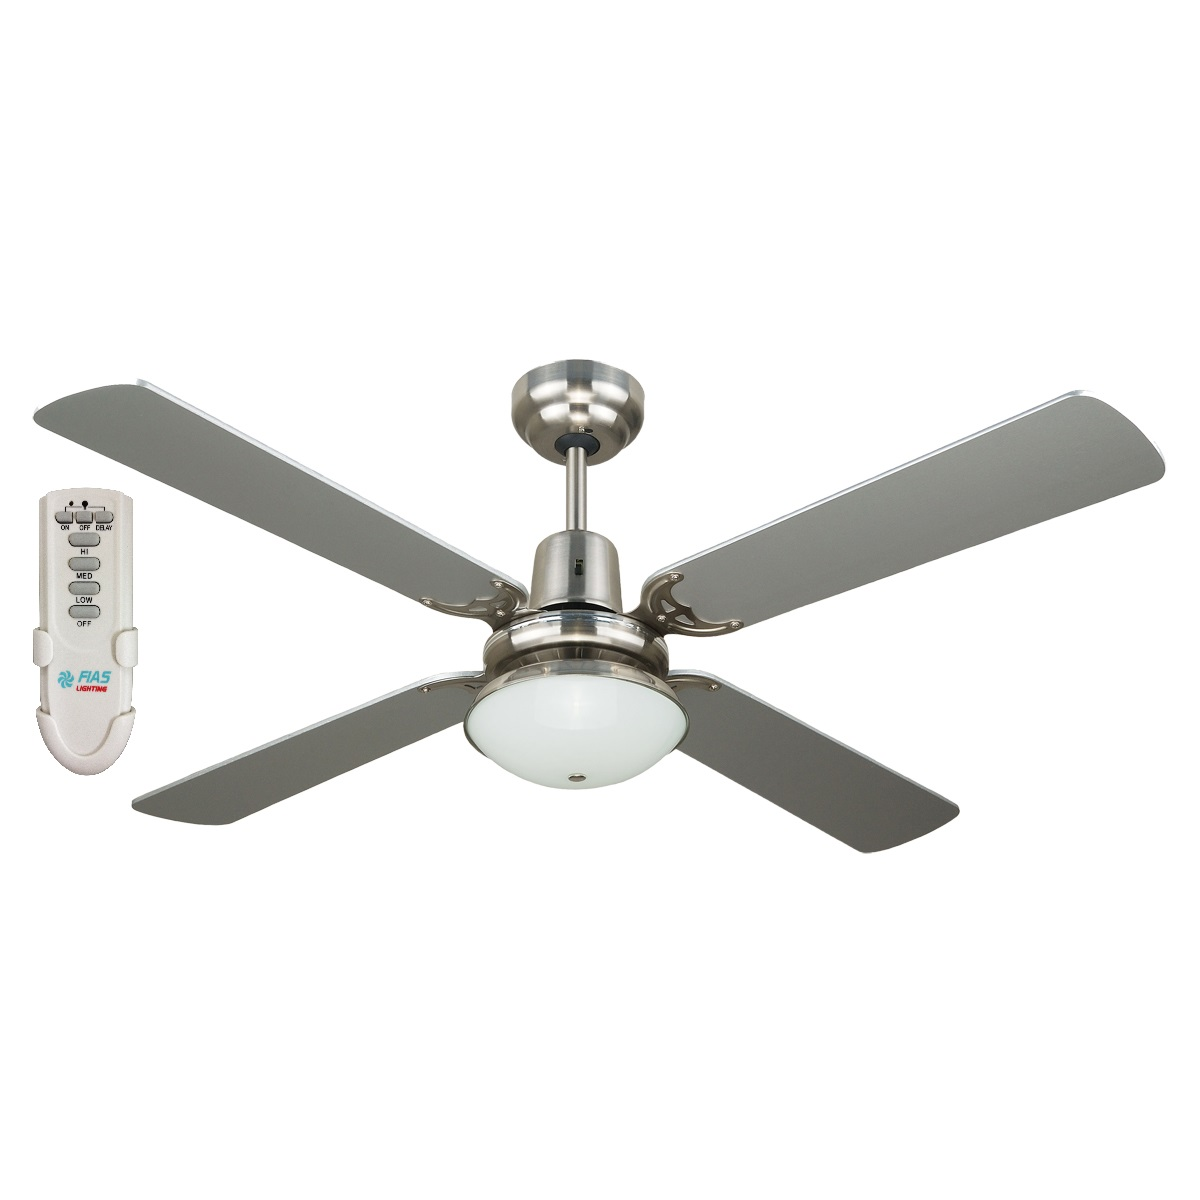 Ceiling Fans With Remote And Light: Ramo 48 Inch Ceiling Fan With Light And Remote Control